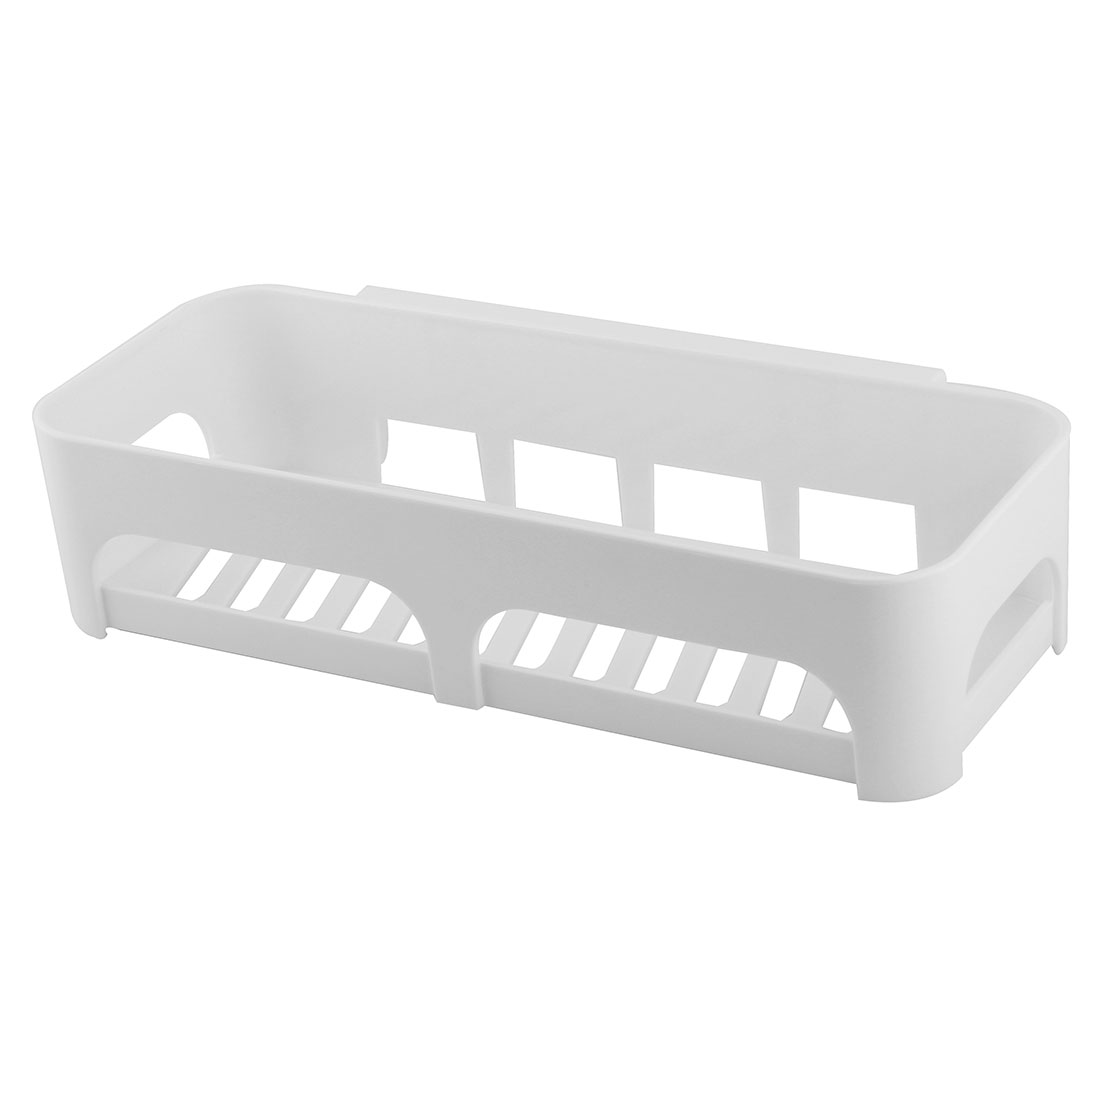 Household Plastic Hollow Out Design Self-adhesive Storage Rack Organizer White